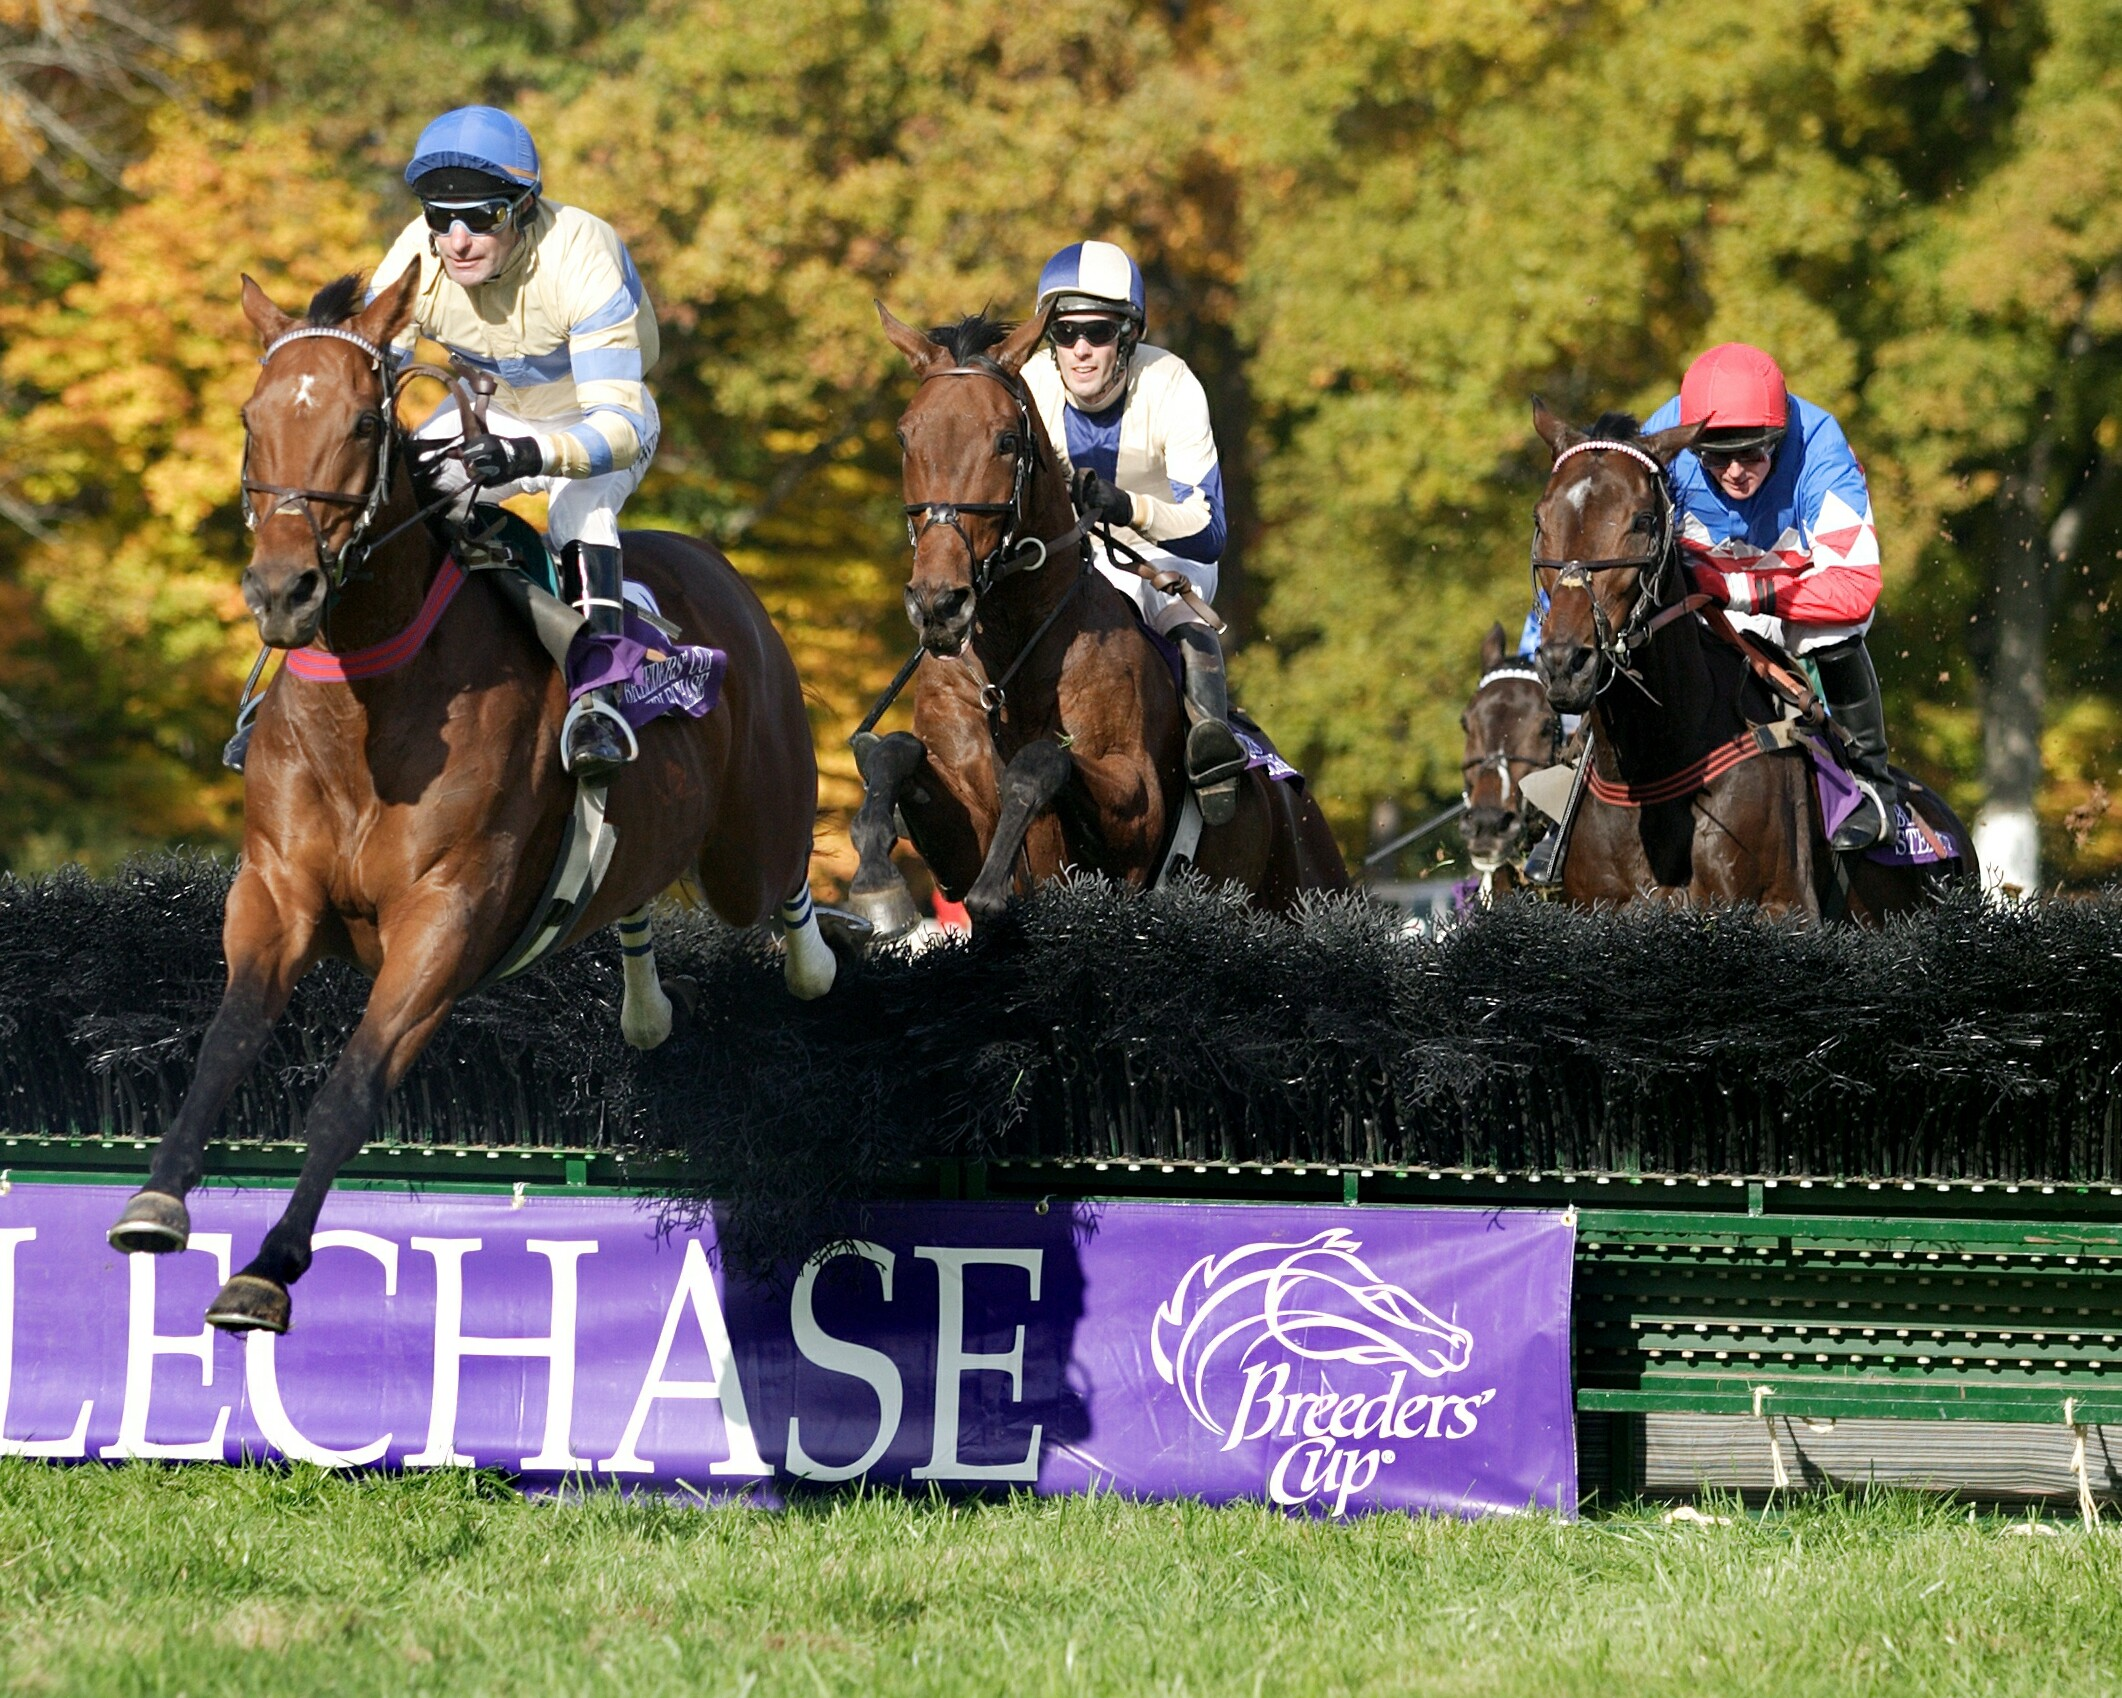 McDynamo (Craig Thornton up) leading Sur La Tete over a jump in the 2004 Breeders' Cup Grand National Steeplechase at Far Hills (Tod Marks)